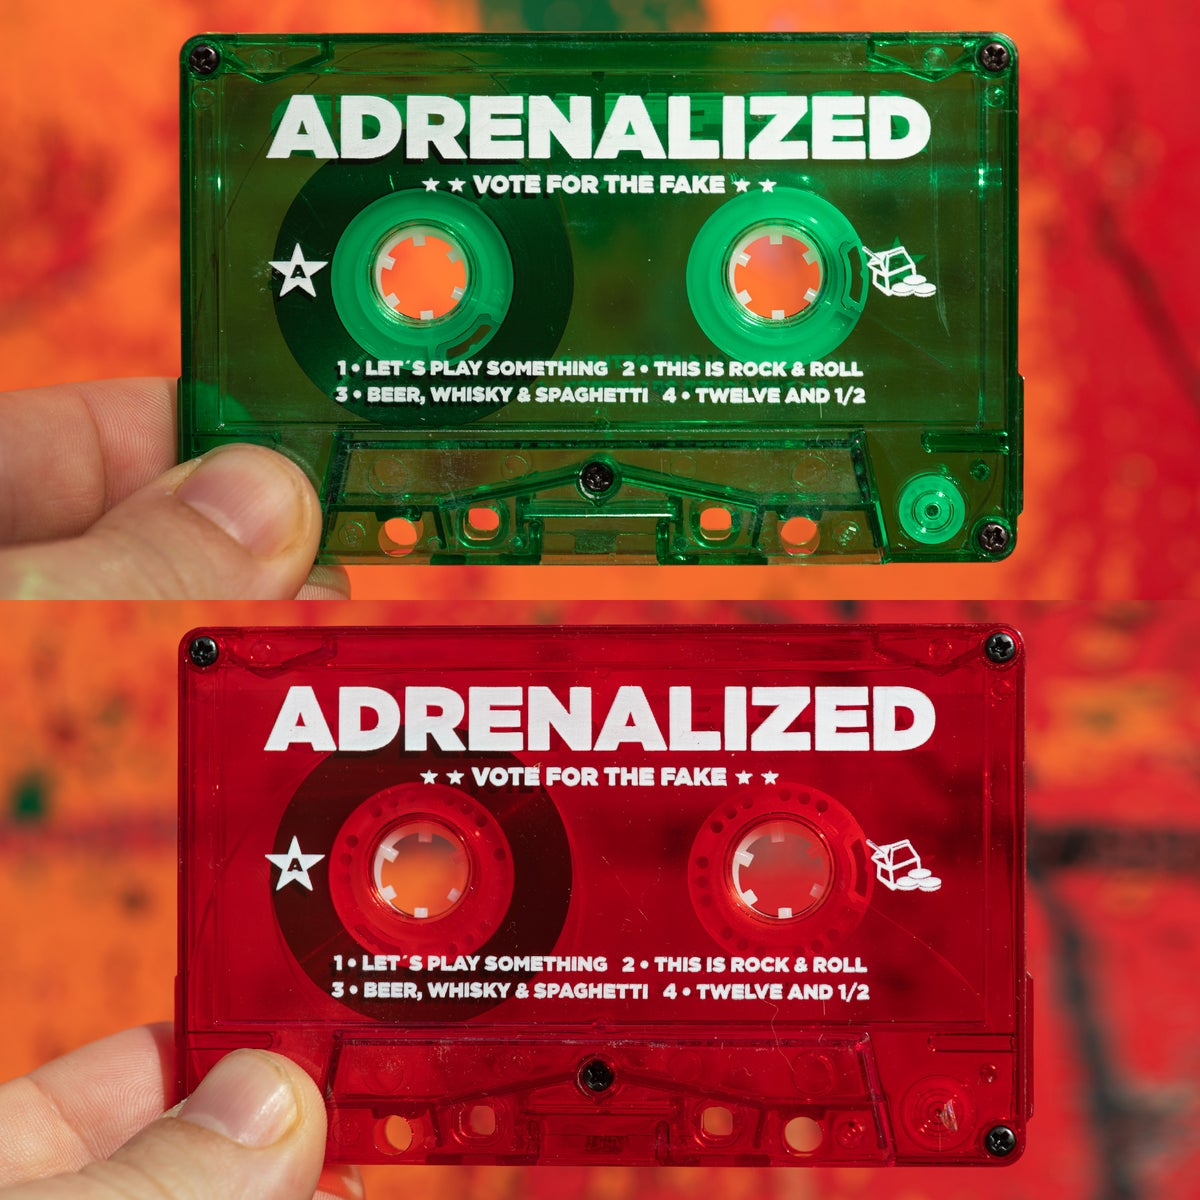 Adrenalized - Vote For The Fake (cassette)